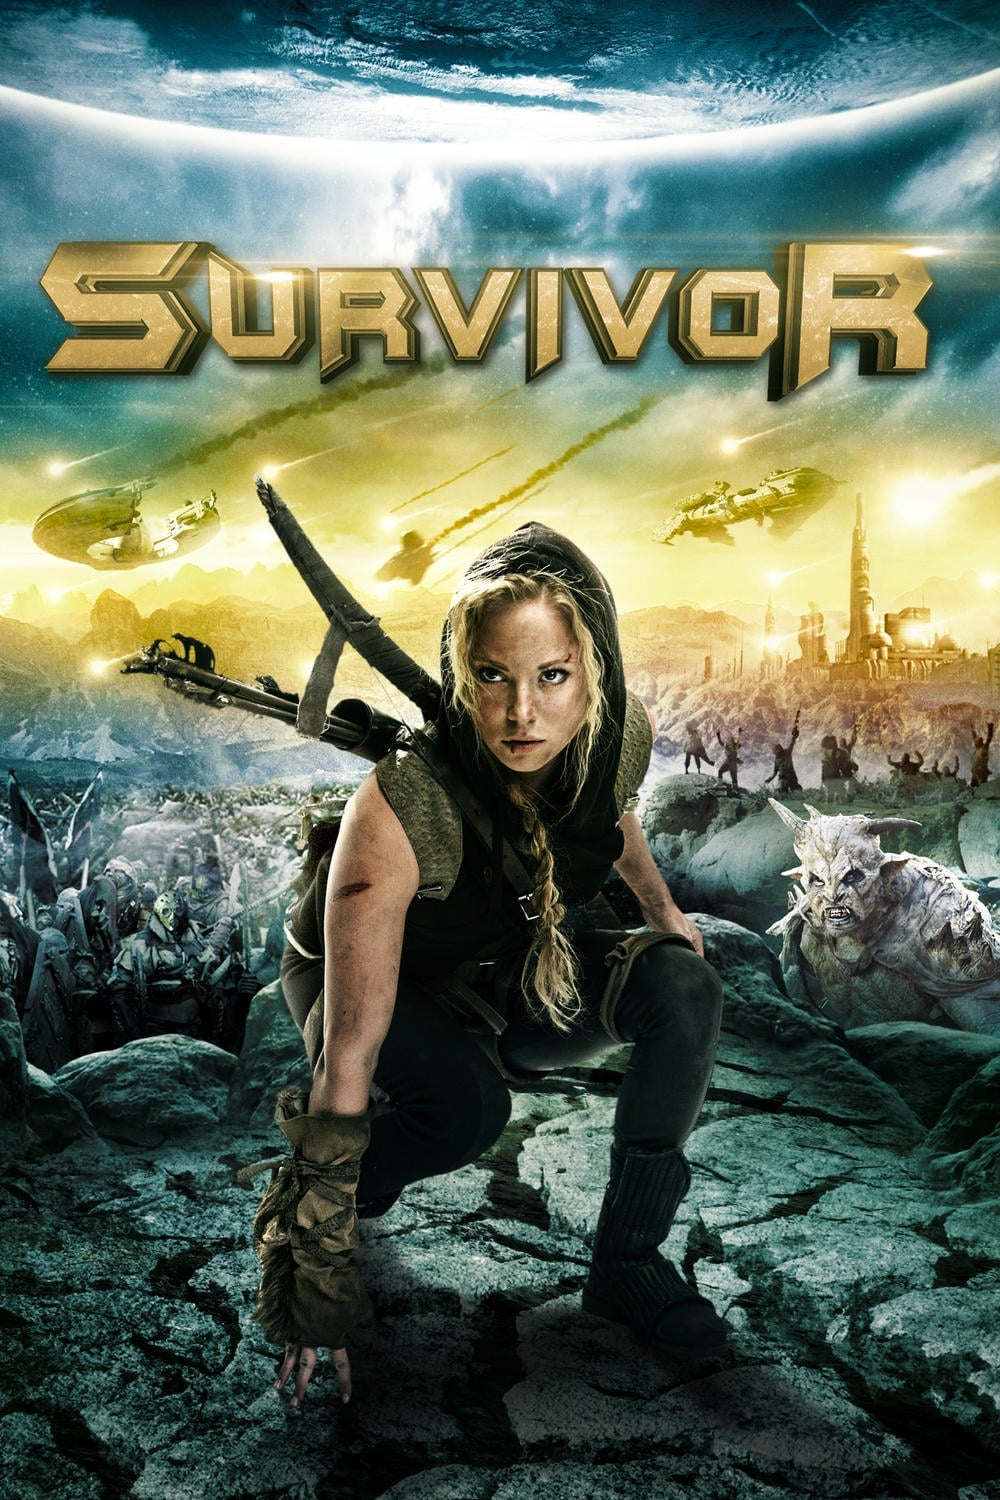 Survivor Film